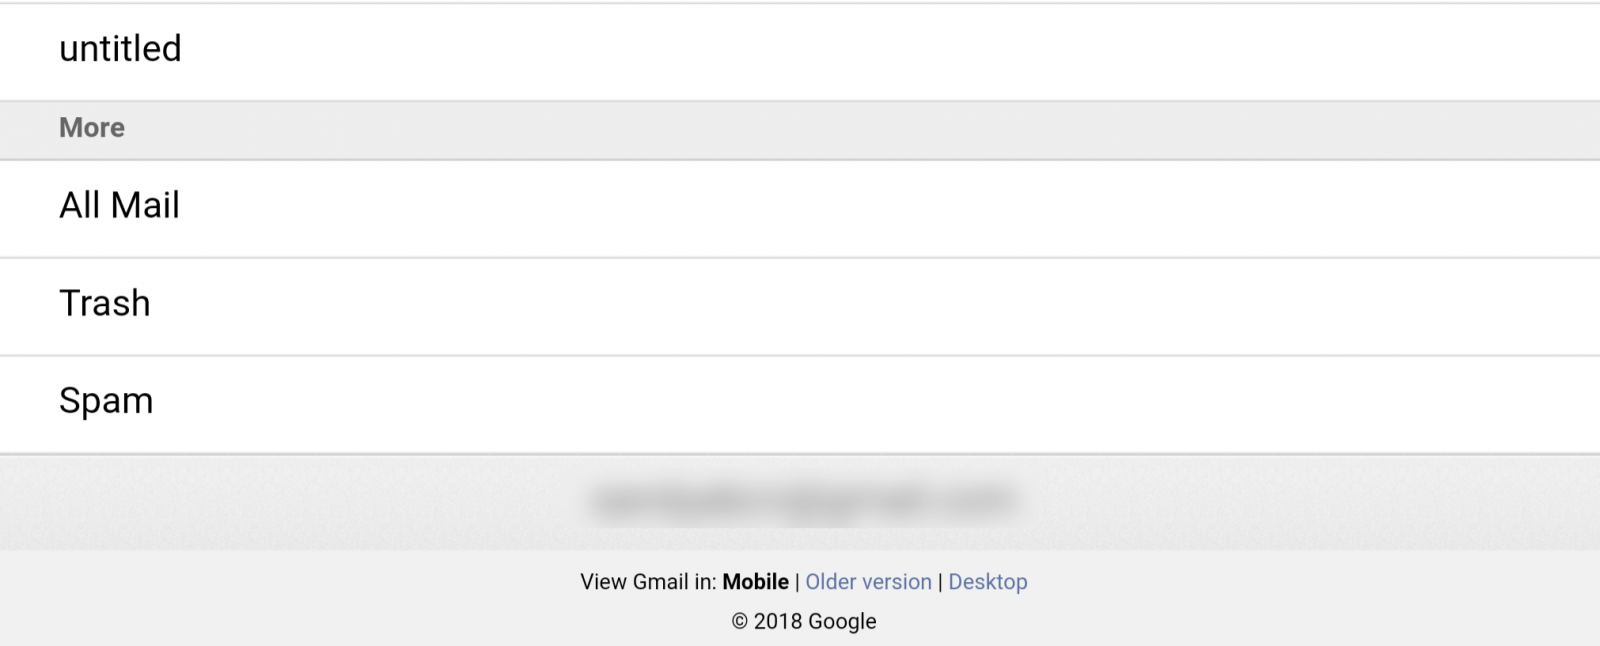 view Gmail in desktop version on mobile